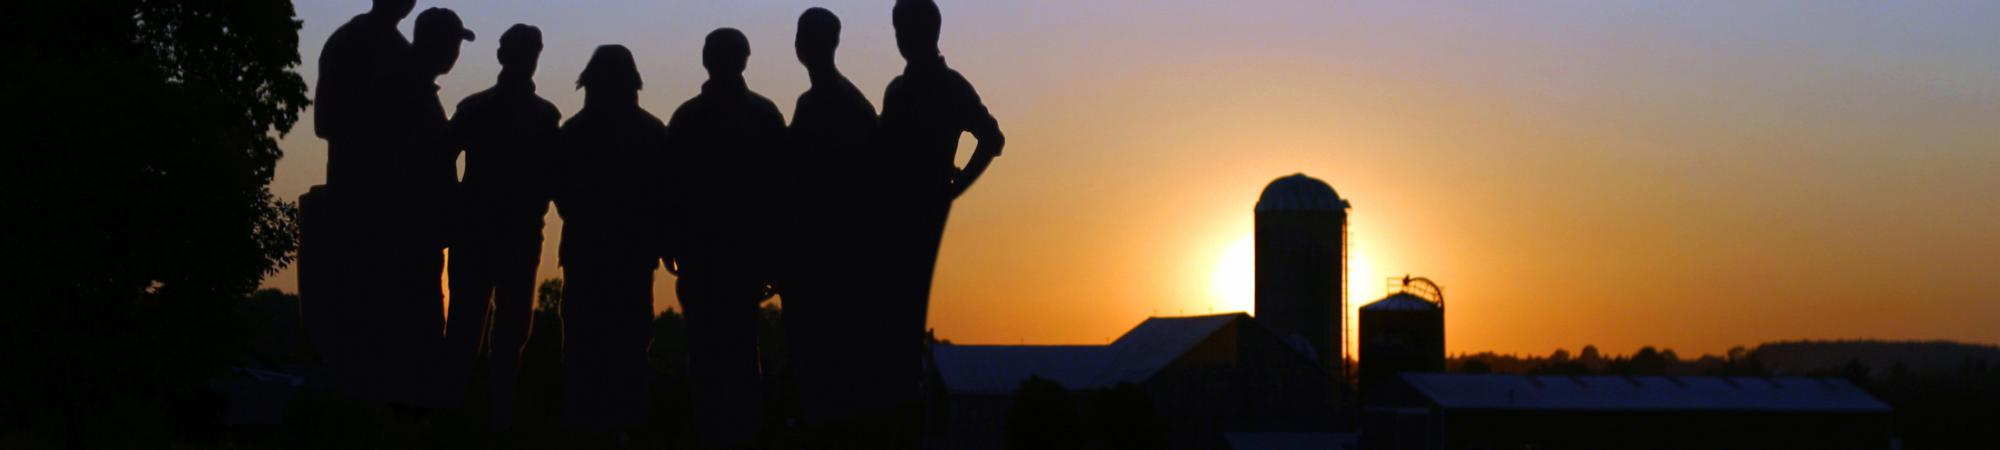 Image showing a group of individuals standing in the field with a barn and sunset in the background